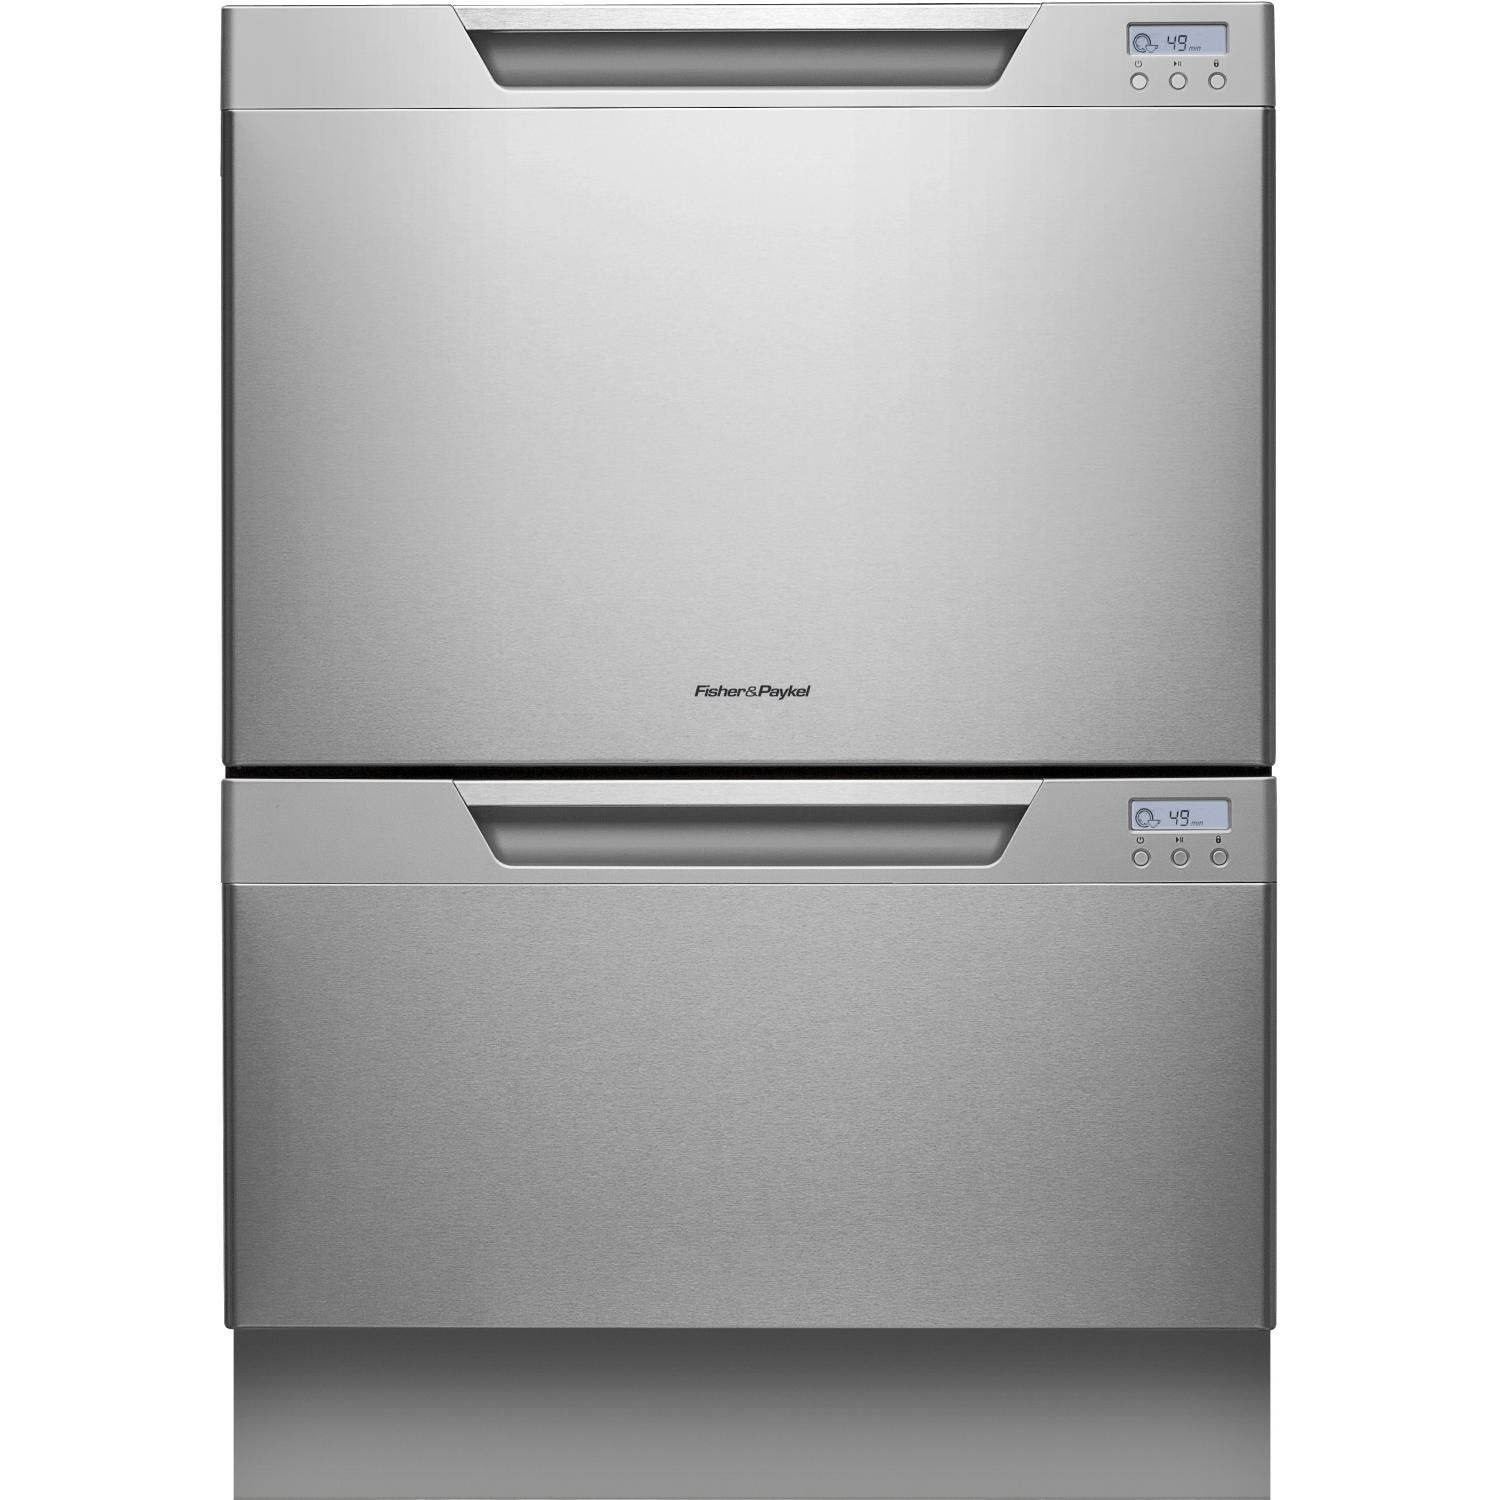 Double Drawer Dishwasher Bosch